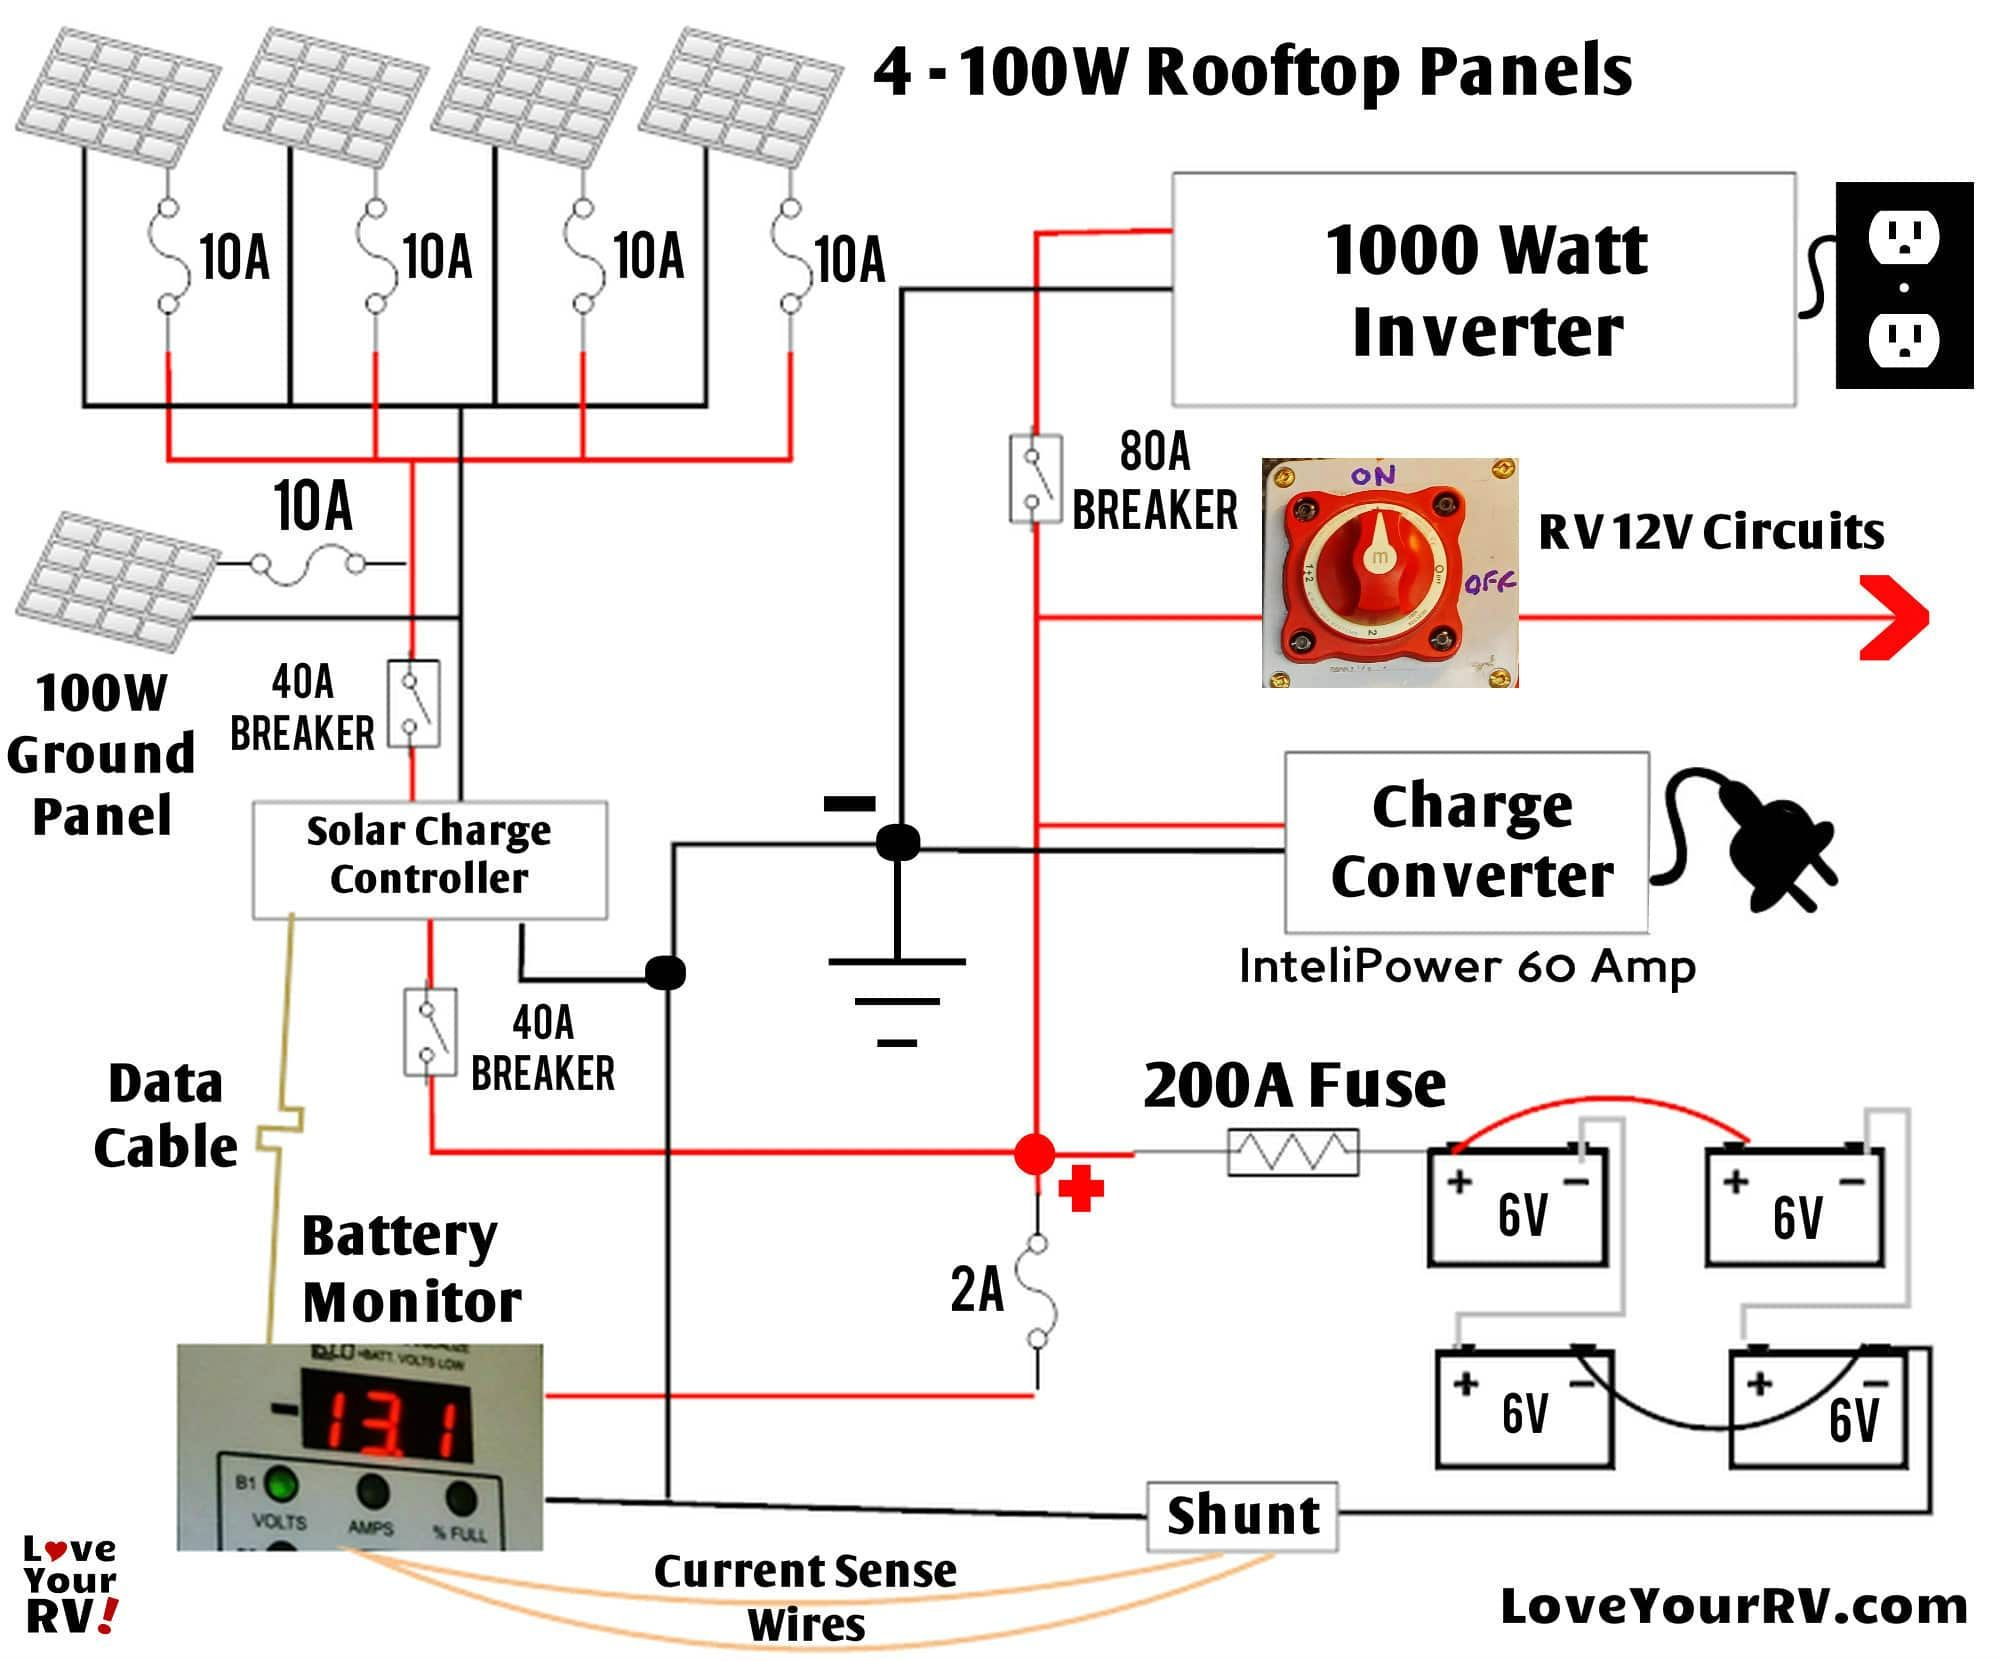 solar panel wiring diagram Collection-I have our off grid RV power system plete so I m putting out a detailed overview of the system ponents used and how much they cost Luckily for me 6-n